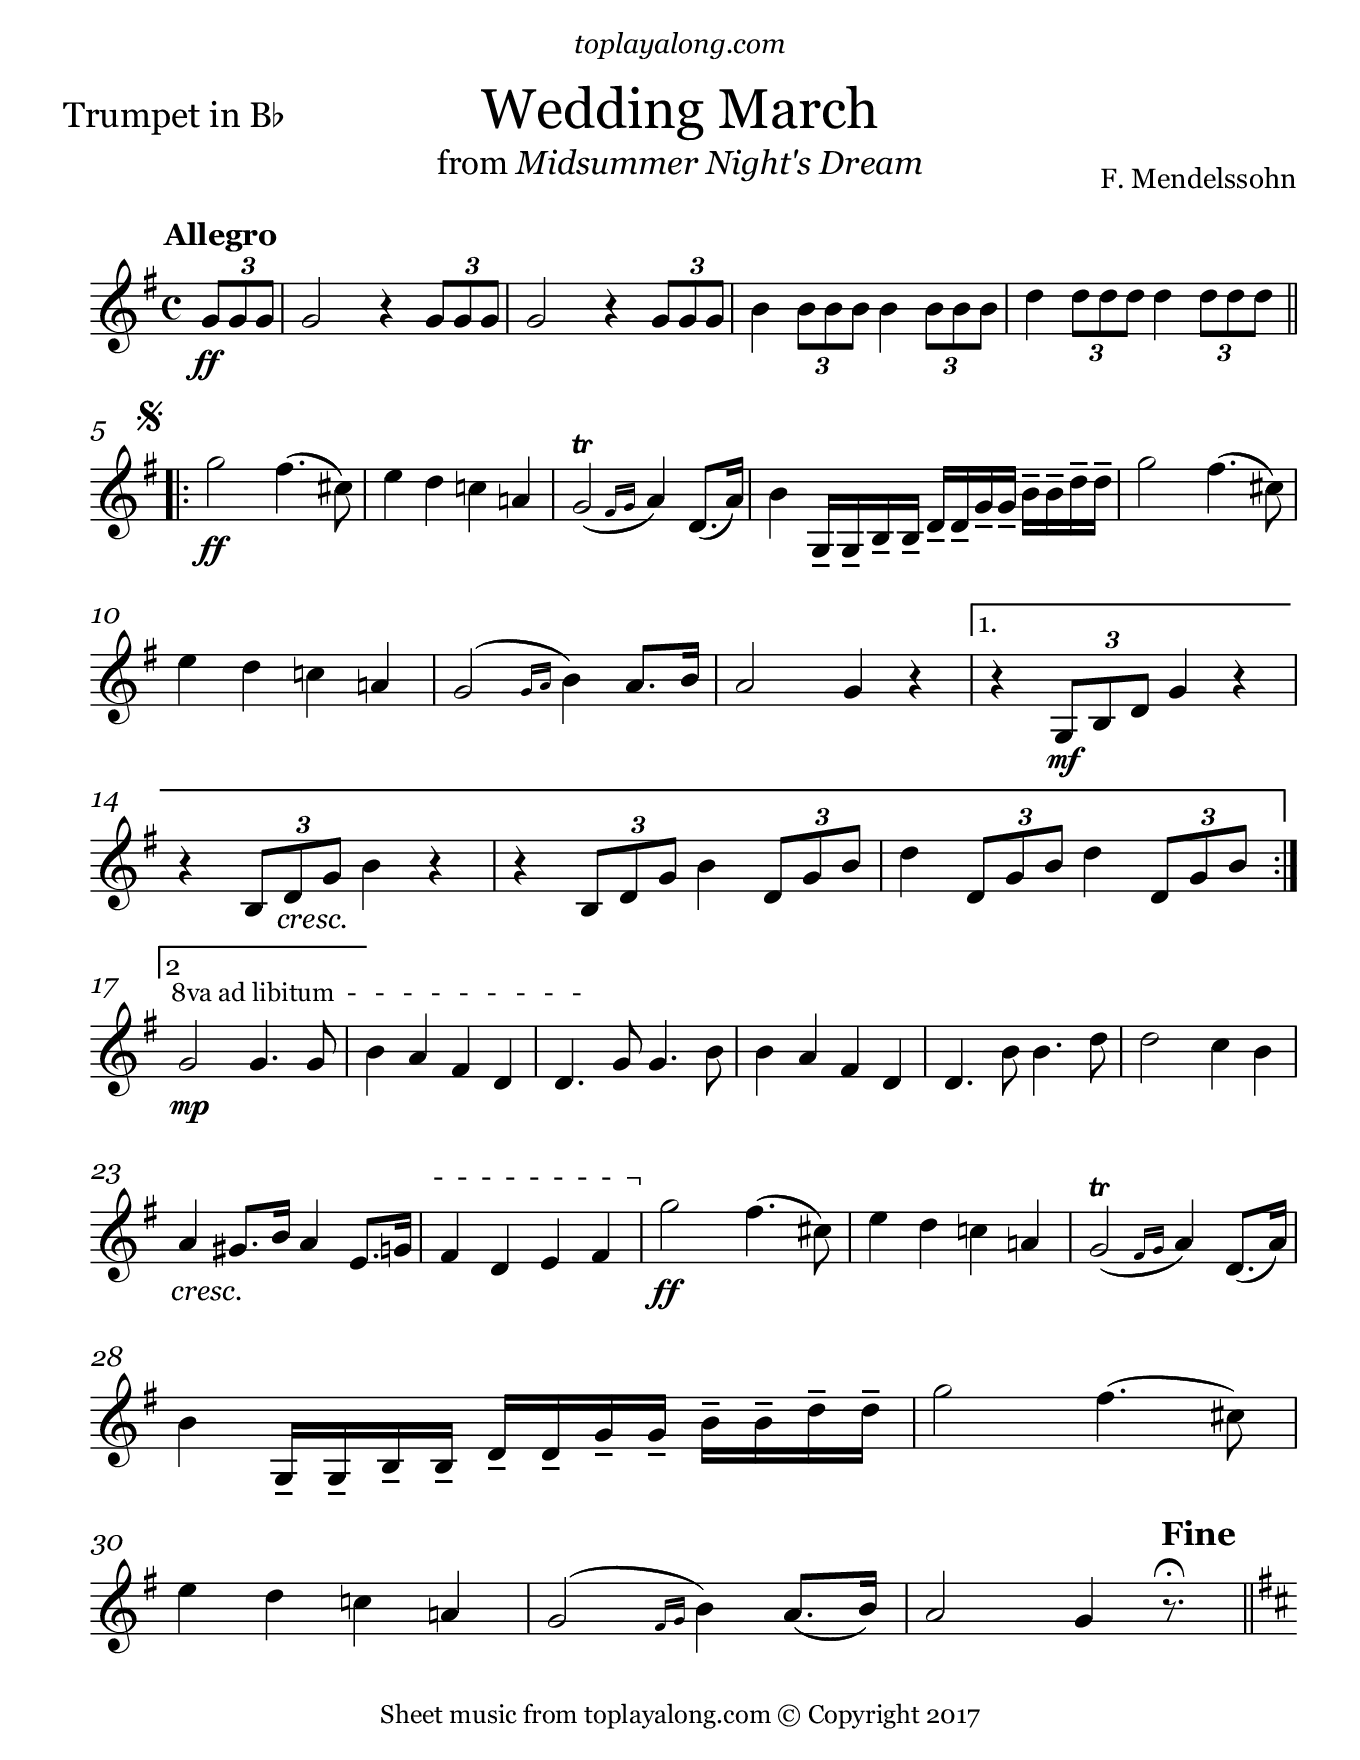 Wedding March from Midsummer Night's Dream by Mendelssohn. Sheet music for Trumpet, page 1.